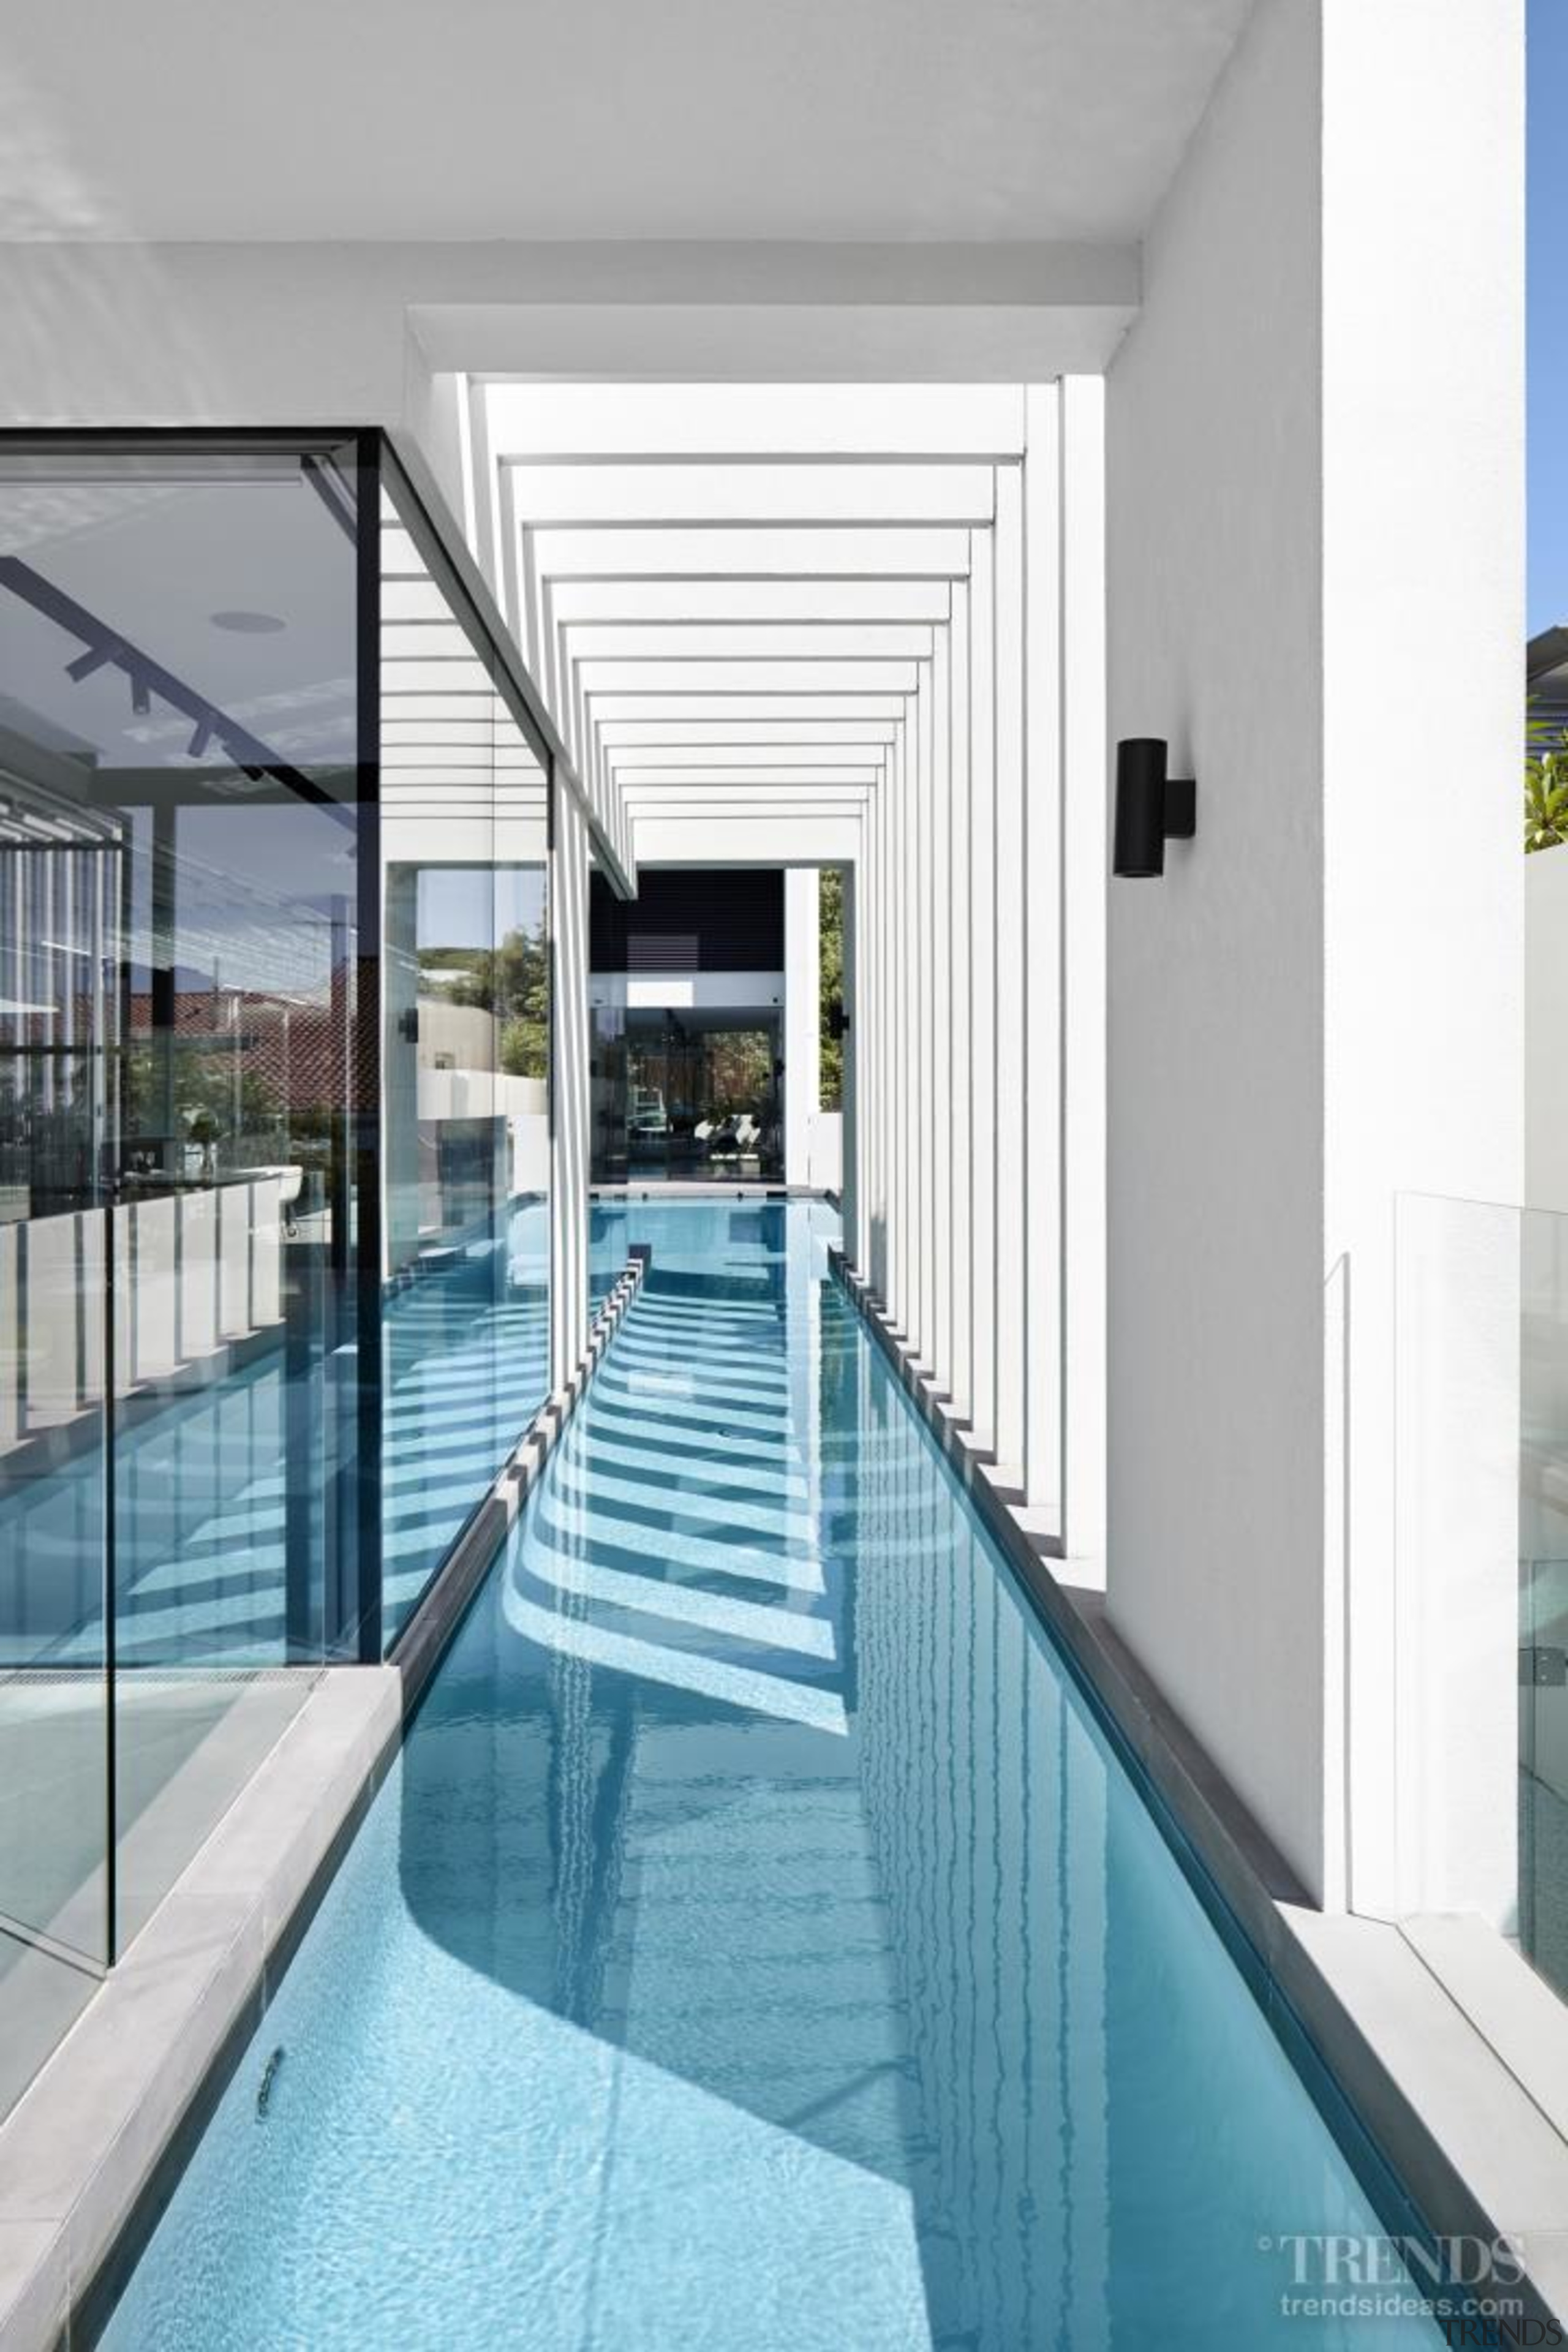 This 25m-long pool extends alongside the informal living architecture, condominium, daylighting, glass, leisure centre, property, real estate, swimming pool, white, teal